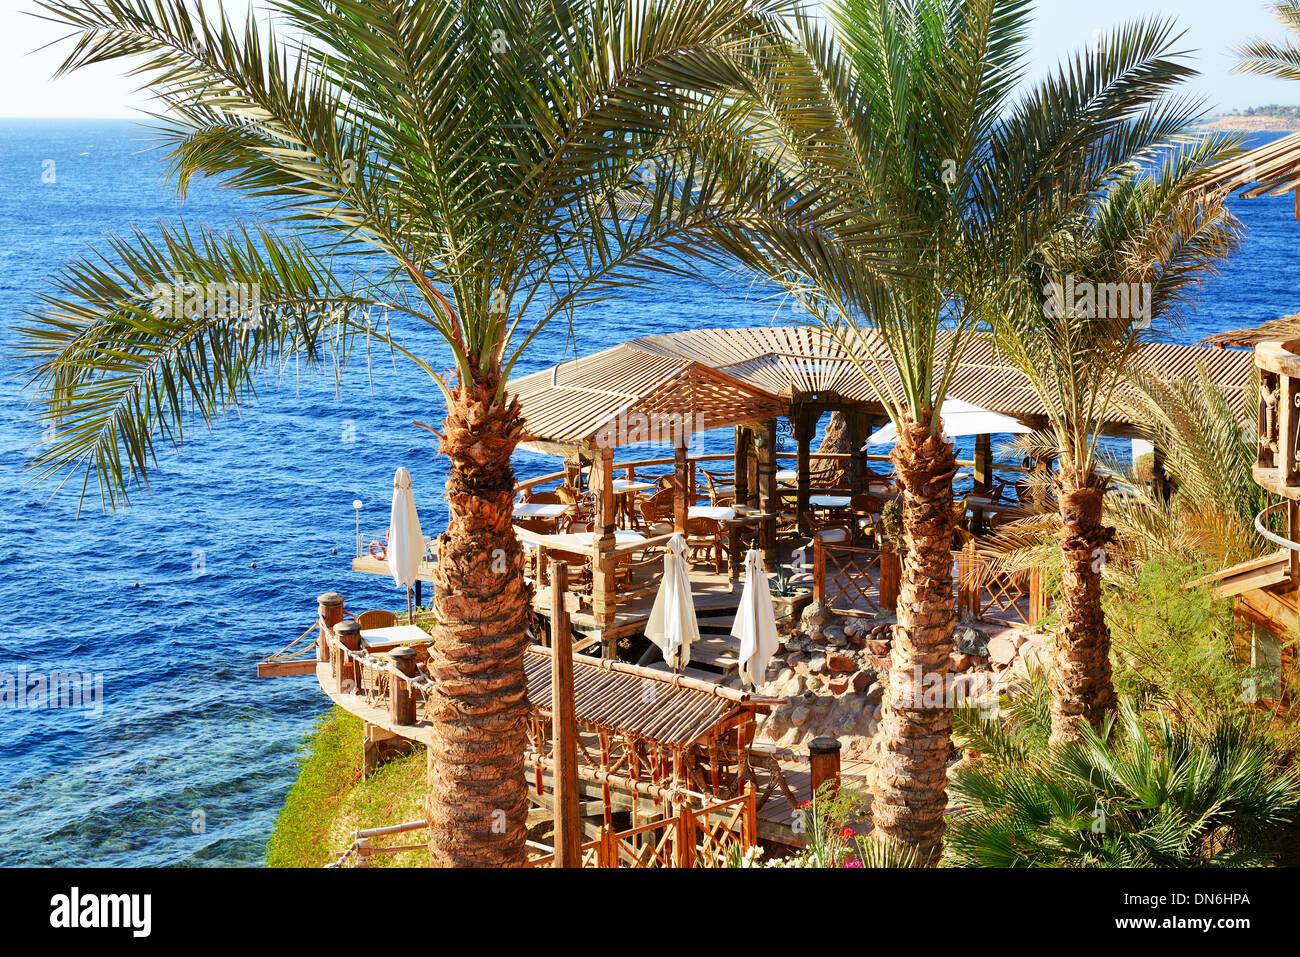 Outdoor Restaurant And Beach At The Luxury Hotel Sharm El Sheikh Stock Photo Alamy